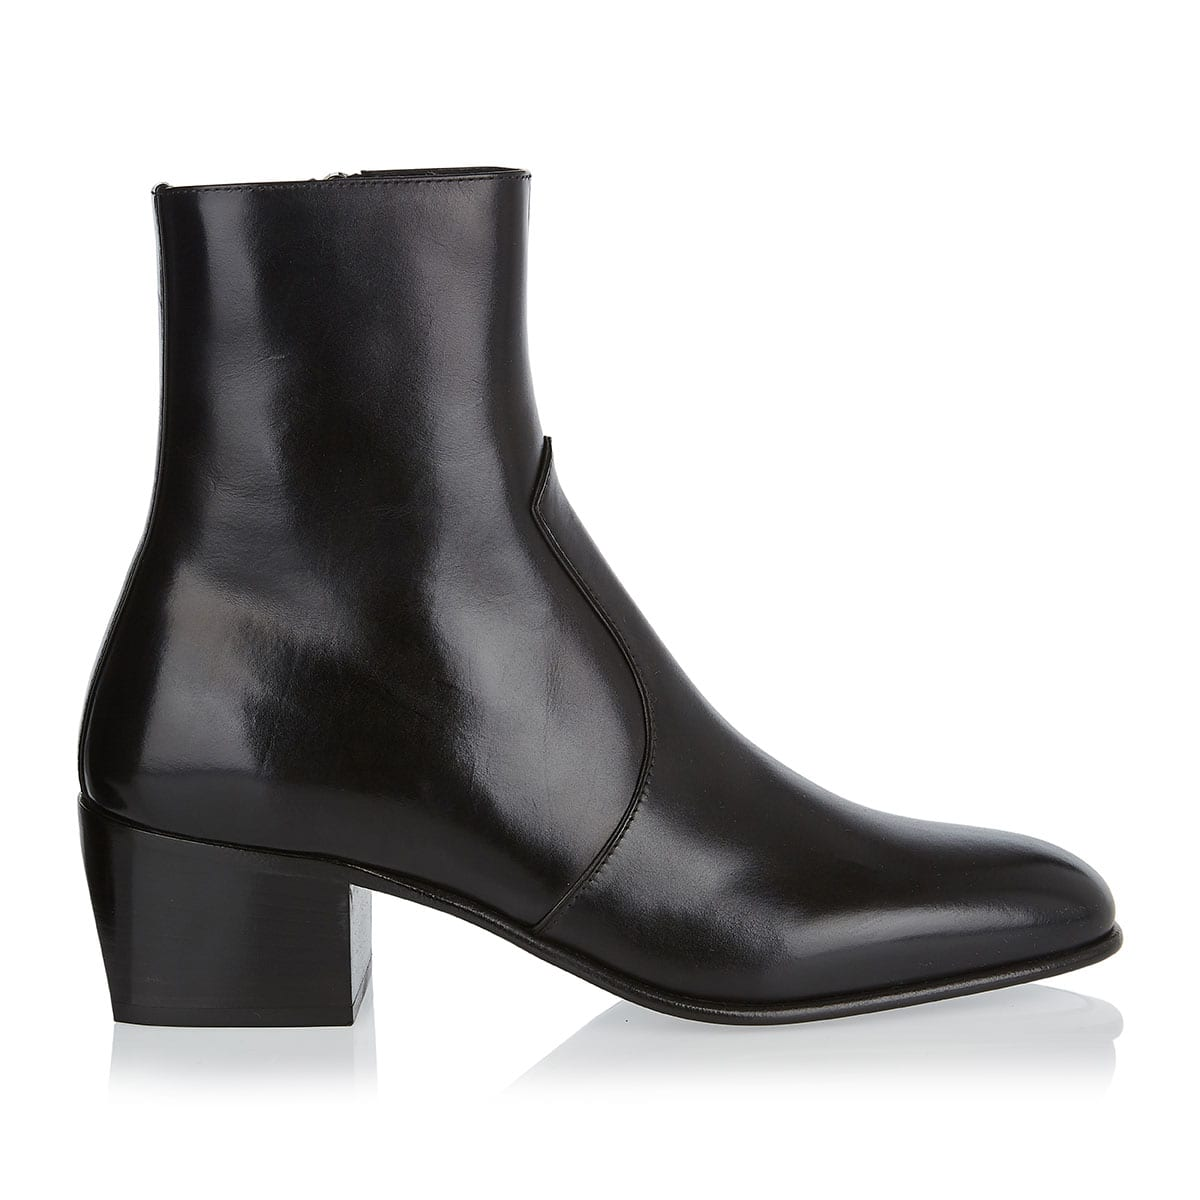 James leather ankle boots